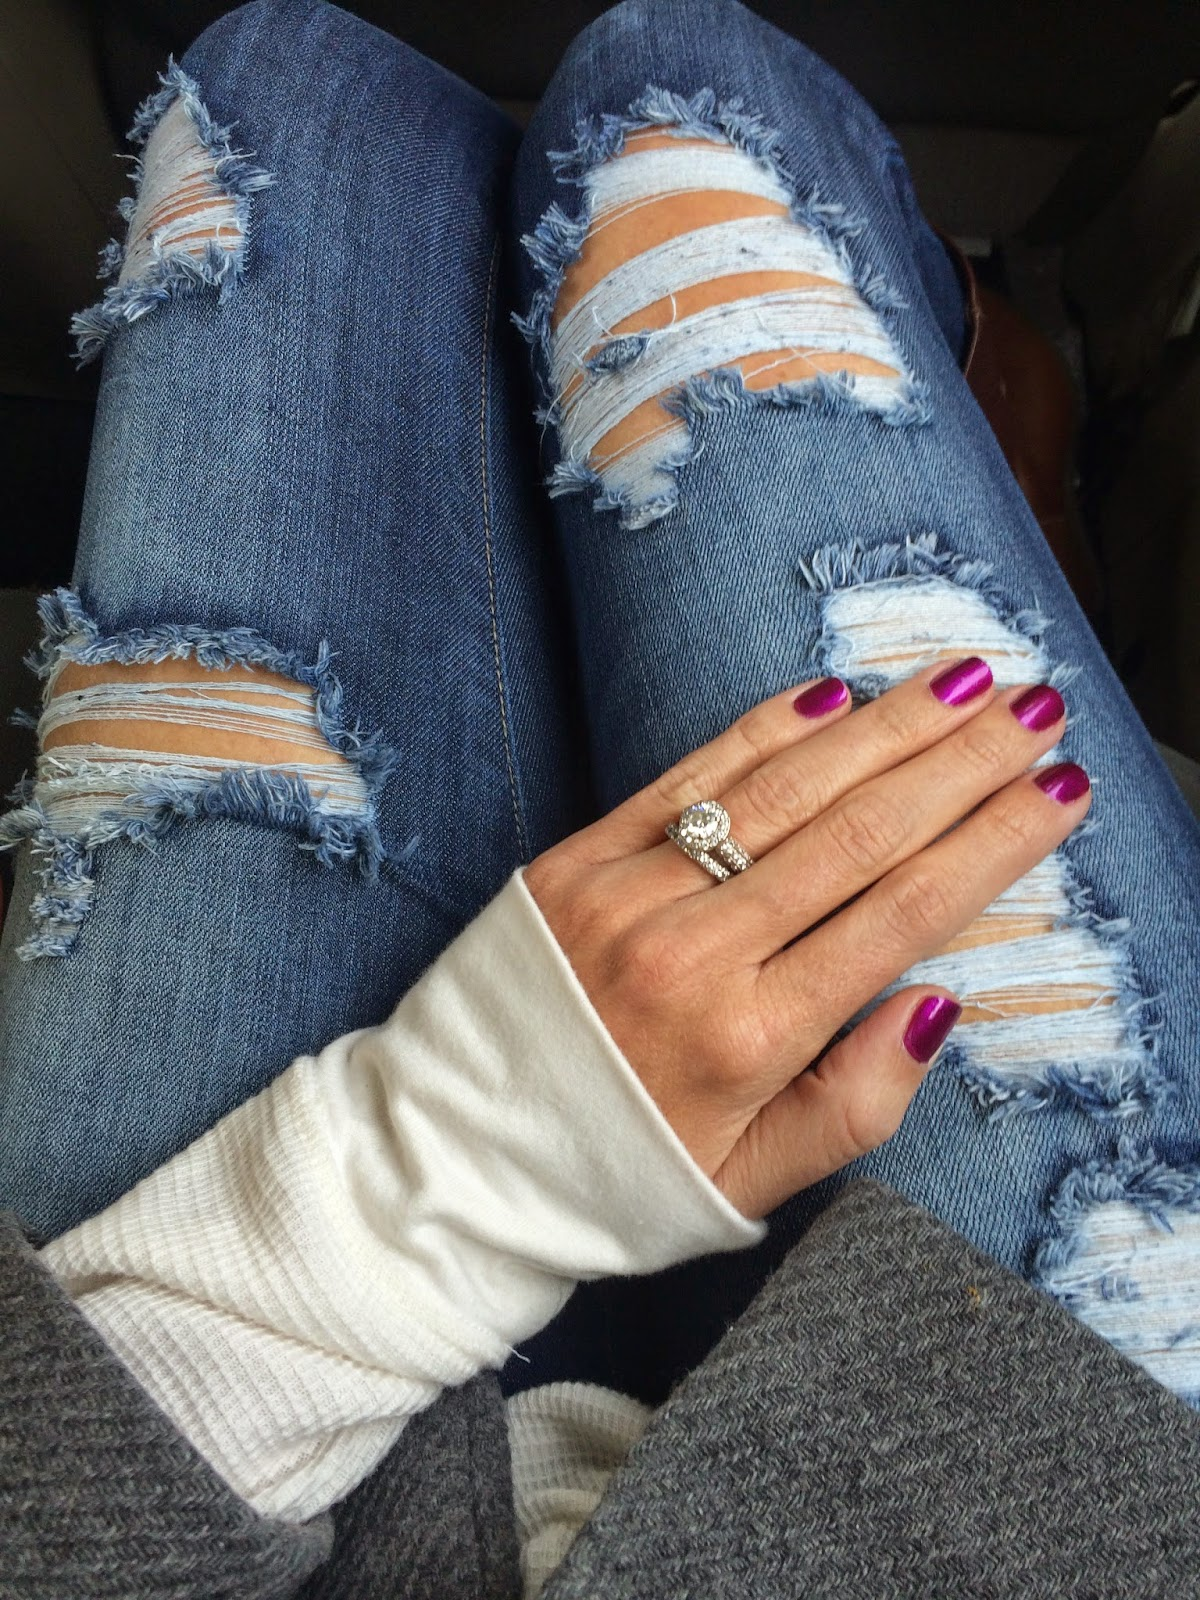 Sally Hansen Miracle Gel Forever 21 Jeans